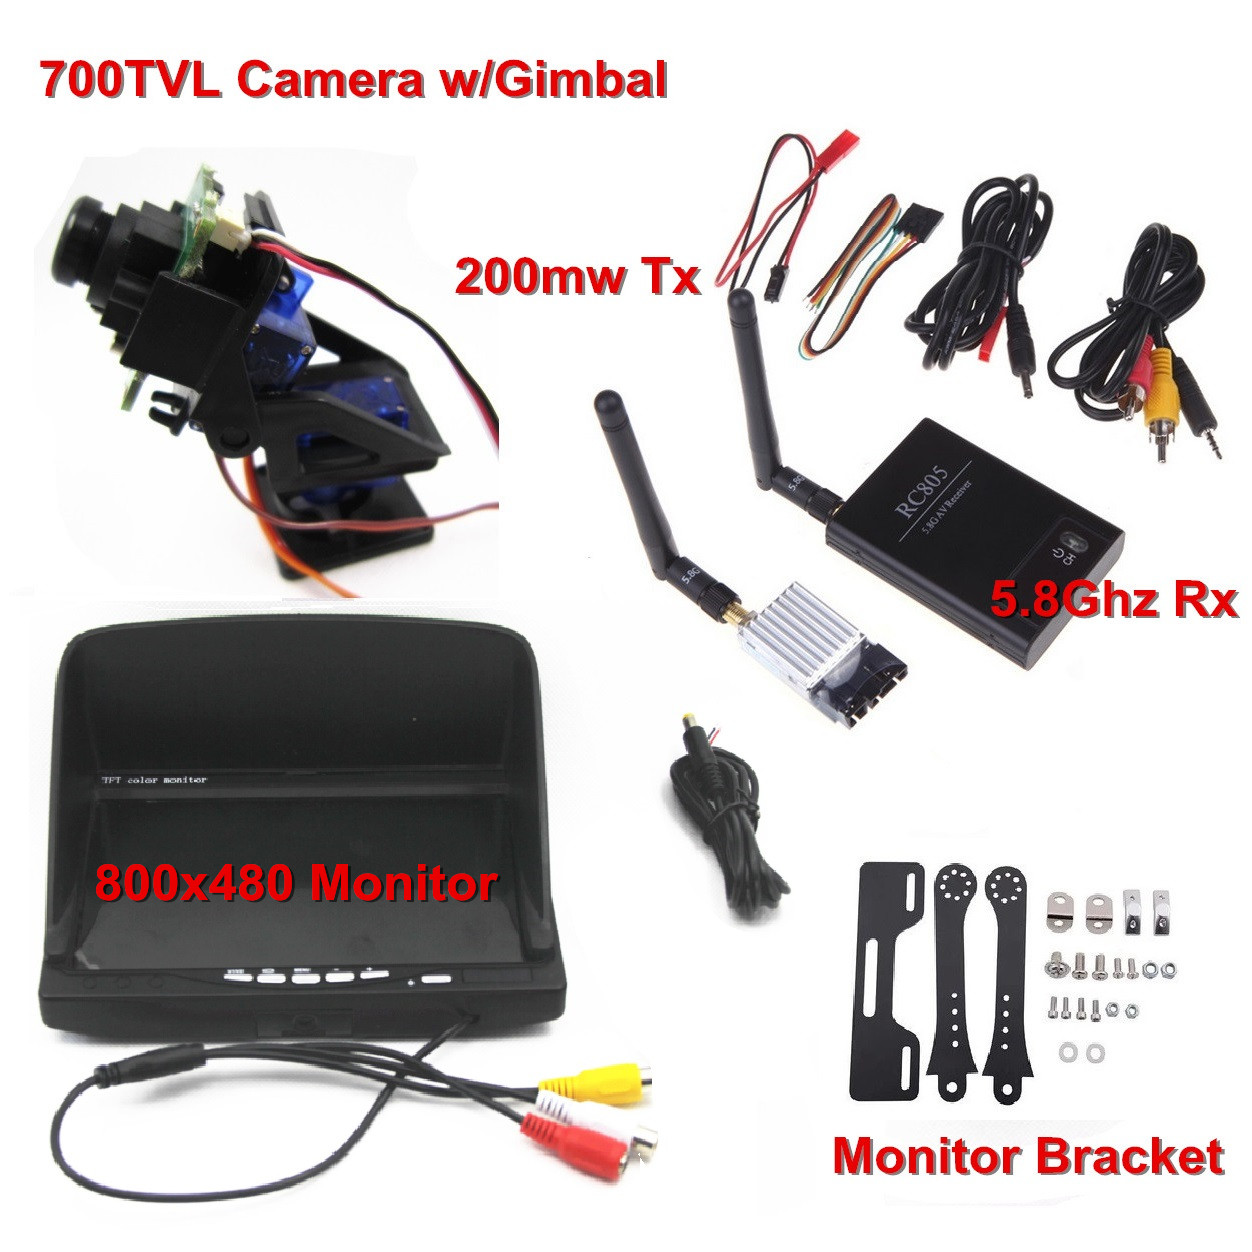 FPV Combo 5.8Ghz FPV System 700TVL camera w/gimbal 5.8Ghz Rx and 200mw Tx and 800x480 Monitor For FPV Quadcopter eachine ts5840 upgraded 40ch 5 8g 200mw wireless av transmitter tx for fpv multicopter